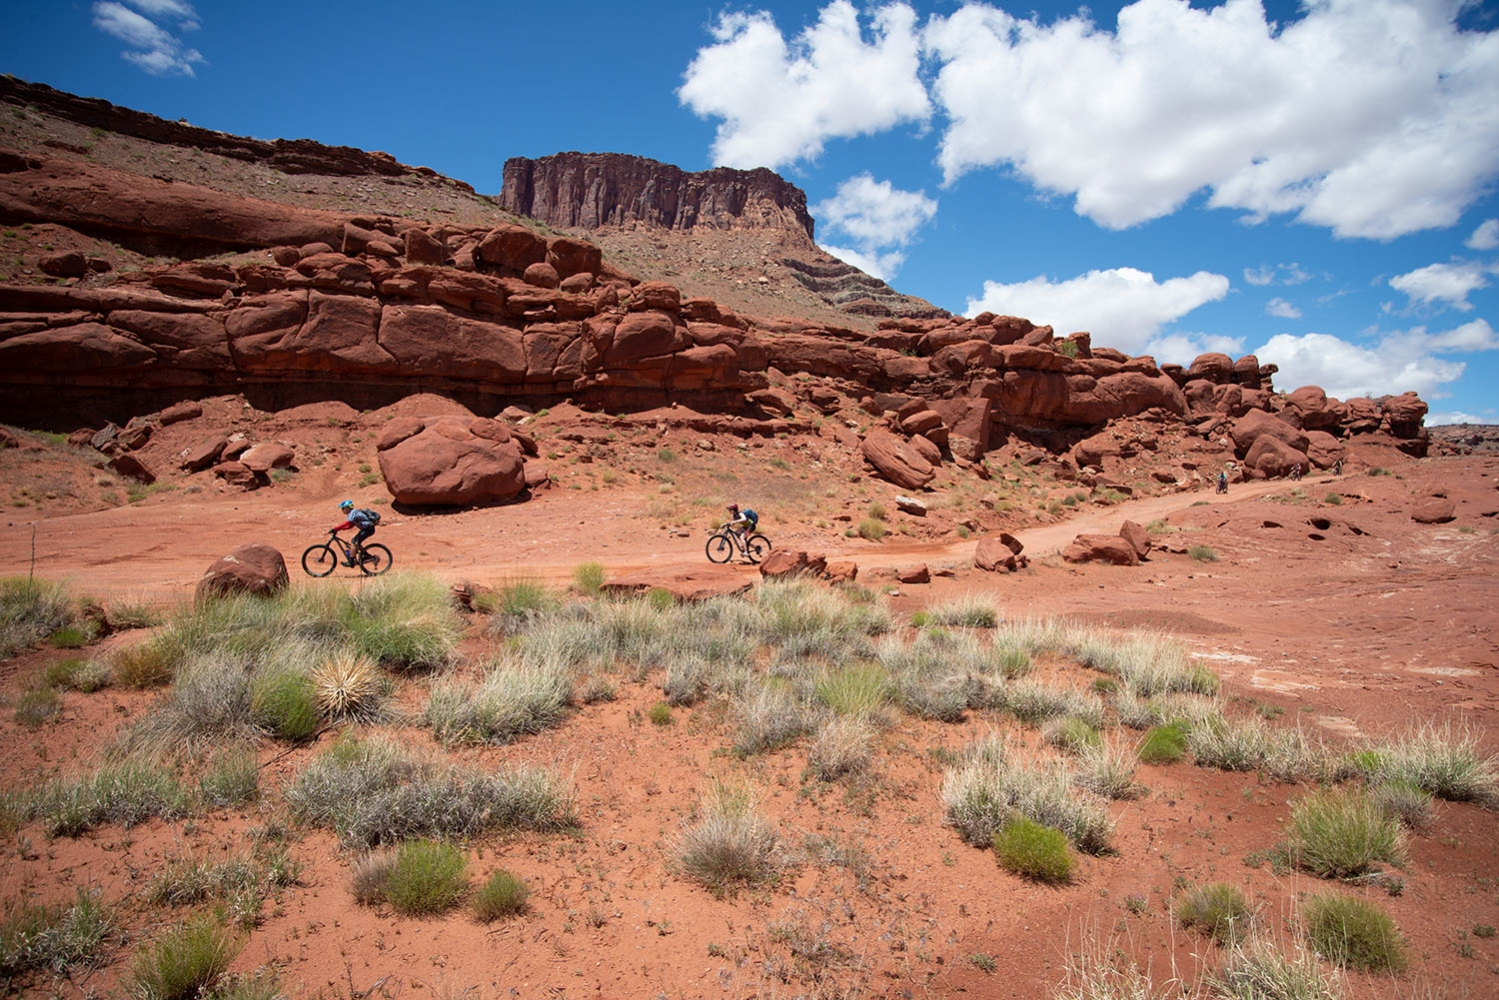 Canyonlands-National-Park-Full-Day-Guided-Mtb-Tour-Balanced-Rock-1